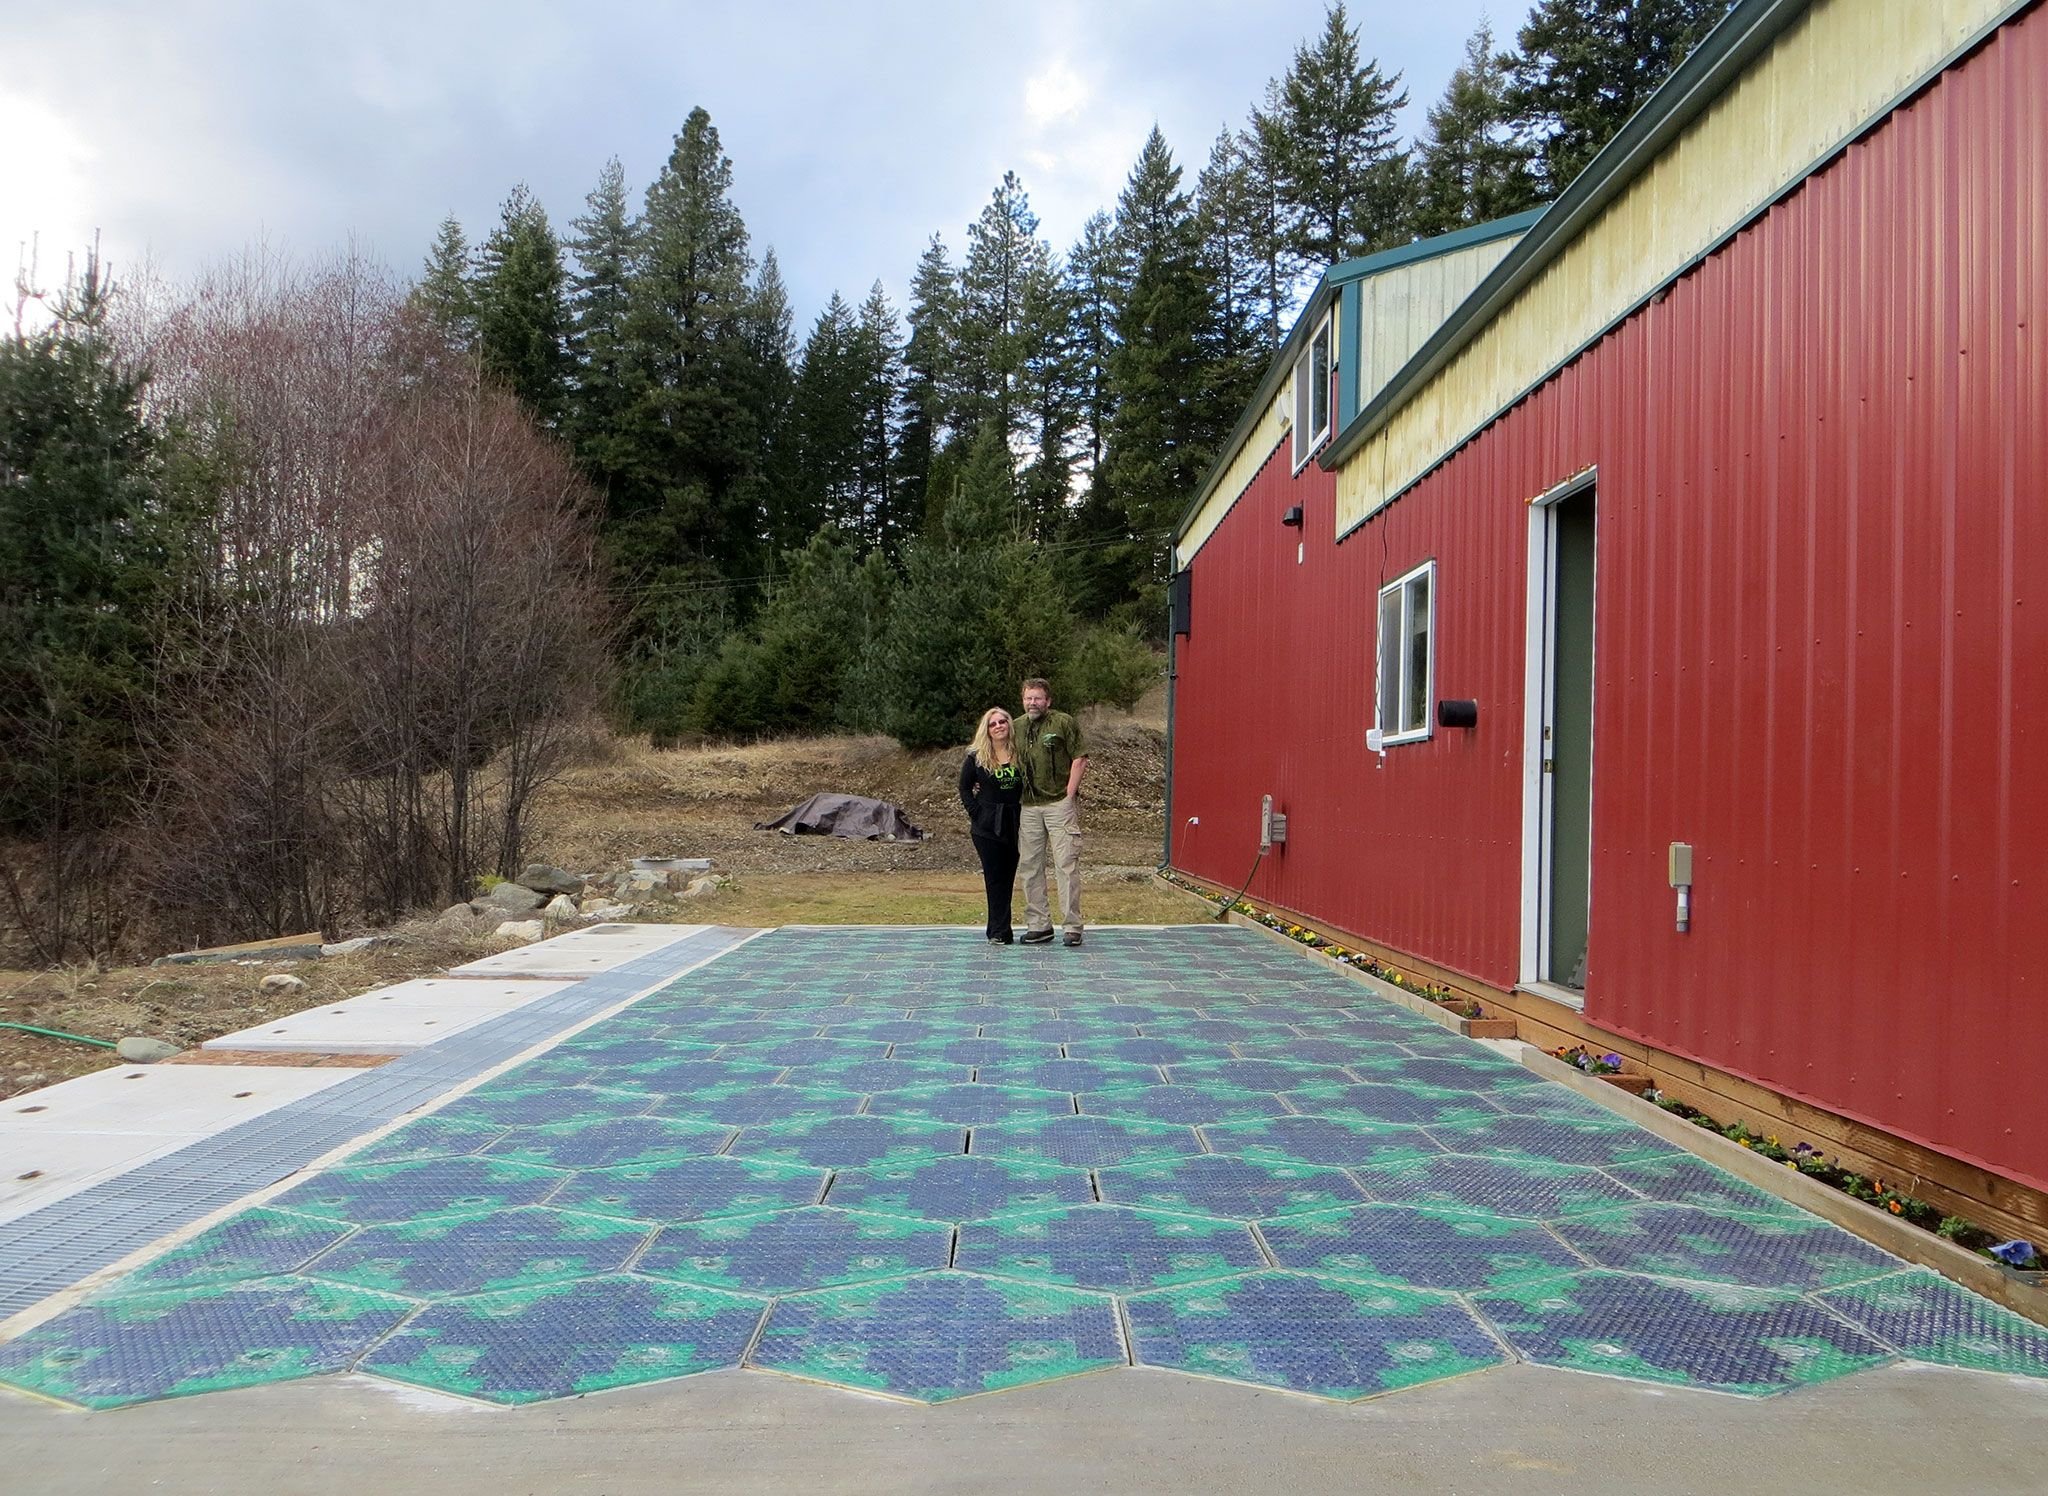 will we soon be riding on solar roads the idea gains traction